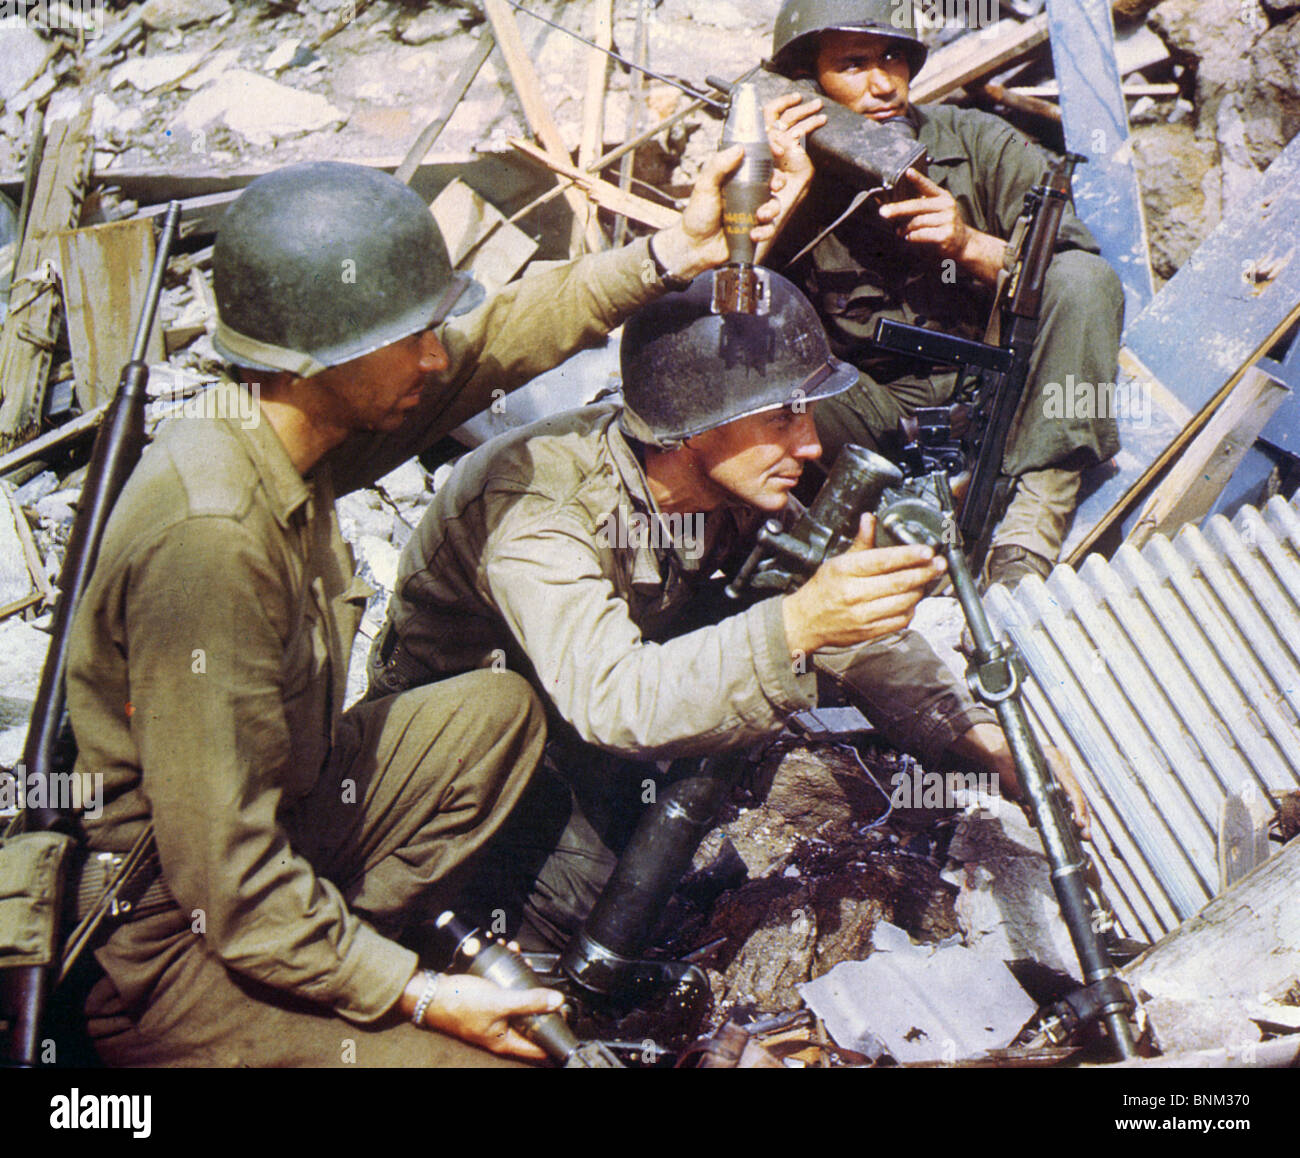 US ARMY MORTAR TEAM  during WW2 - Stock Image